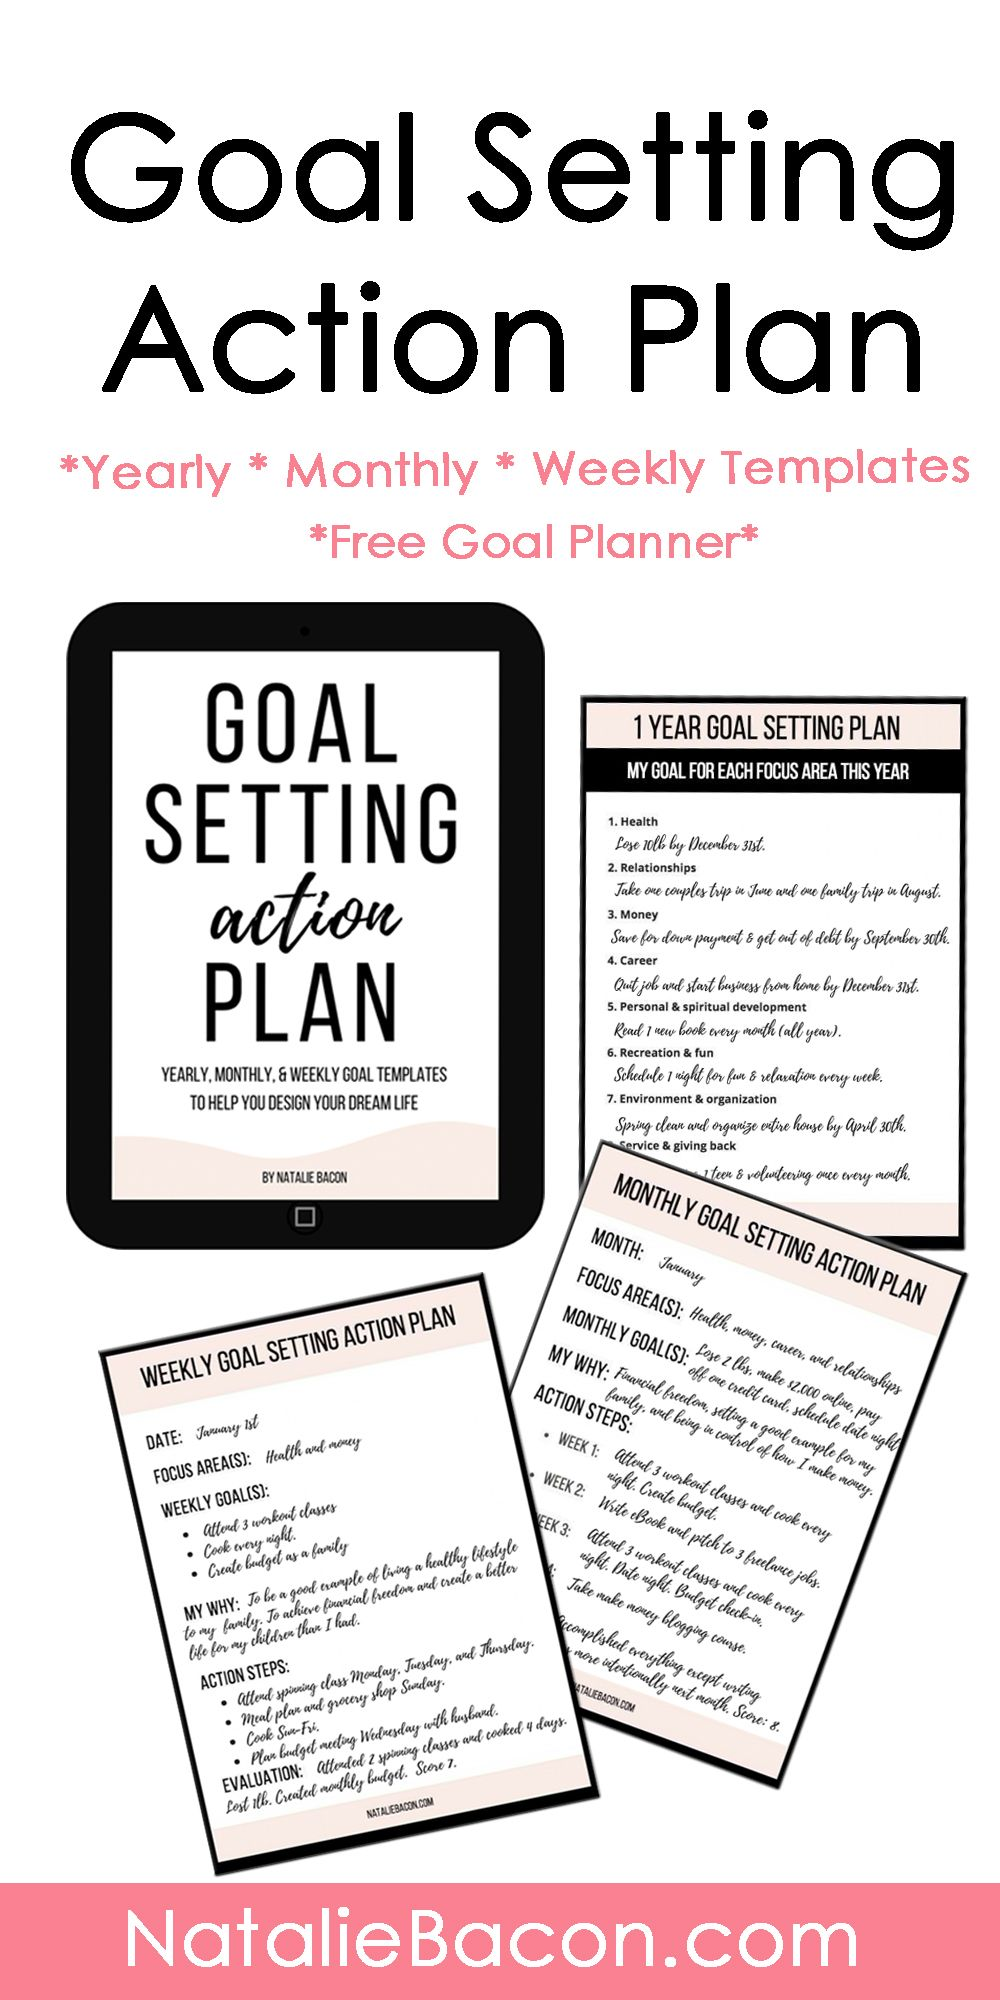 goal setting action plan free templates and goal planner. Black Bedroom Furniture Sets. Home Design Ideas